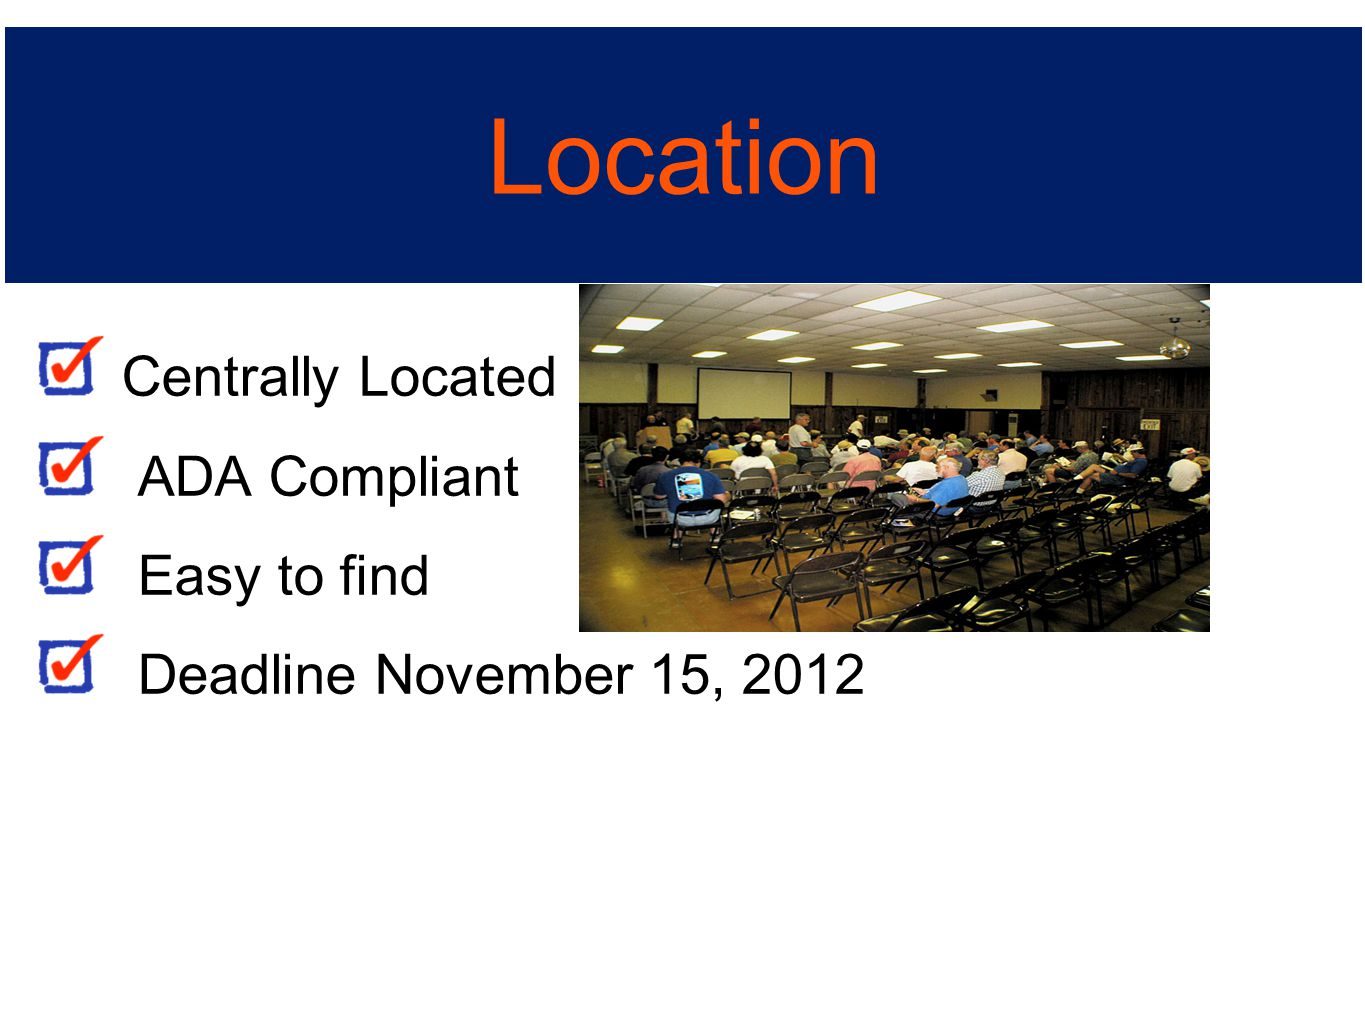 Centrally Located ADA Compliant Easy to find Deadline November 15, 2012